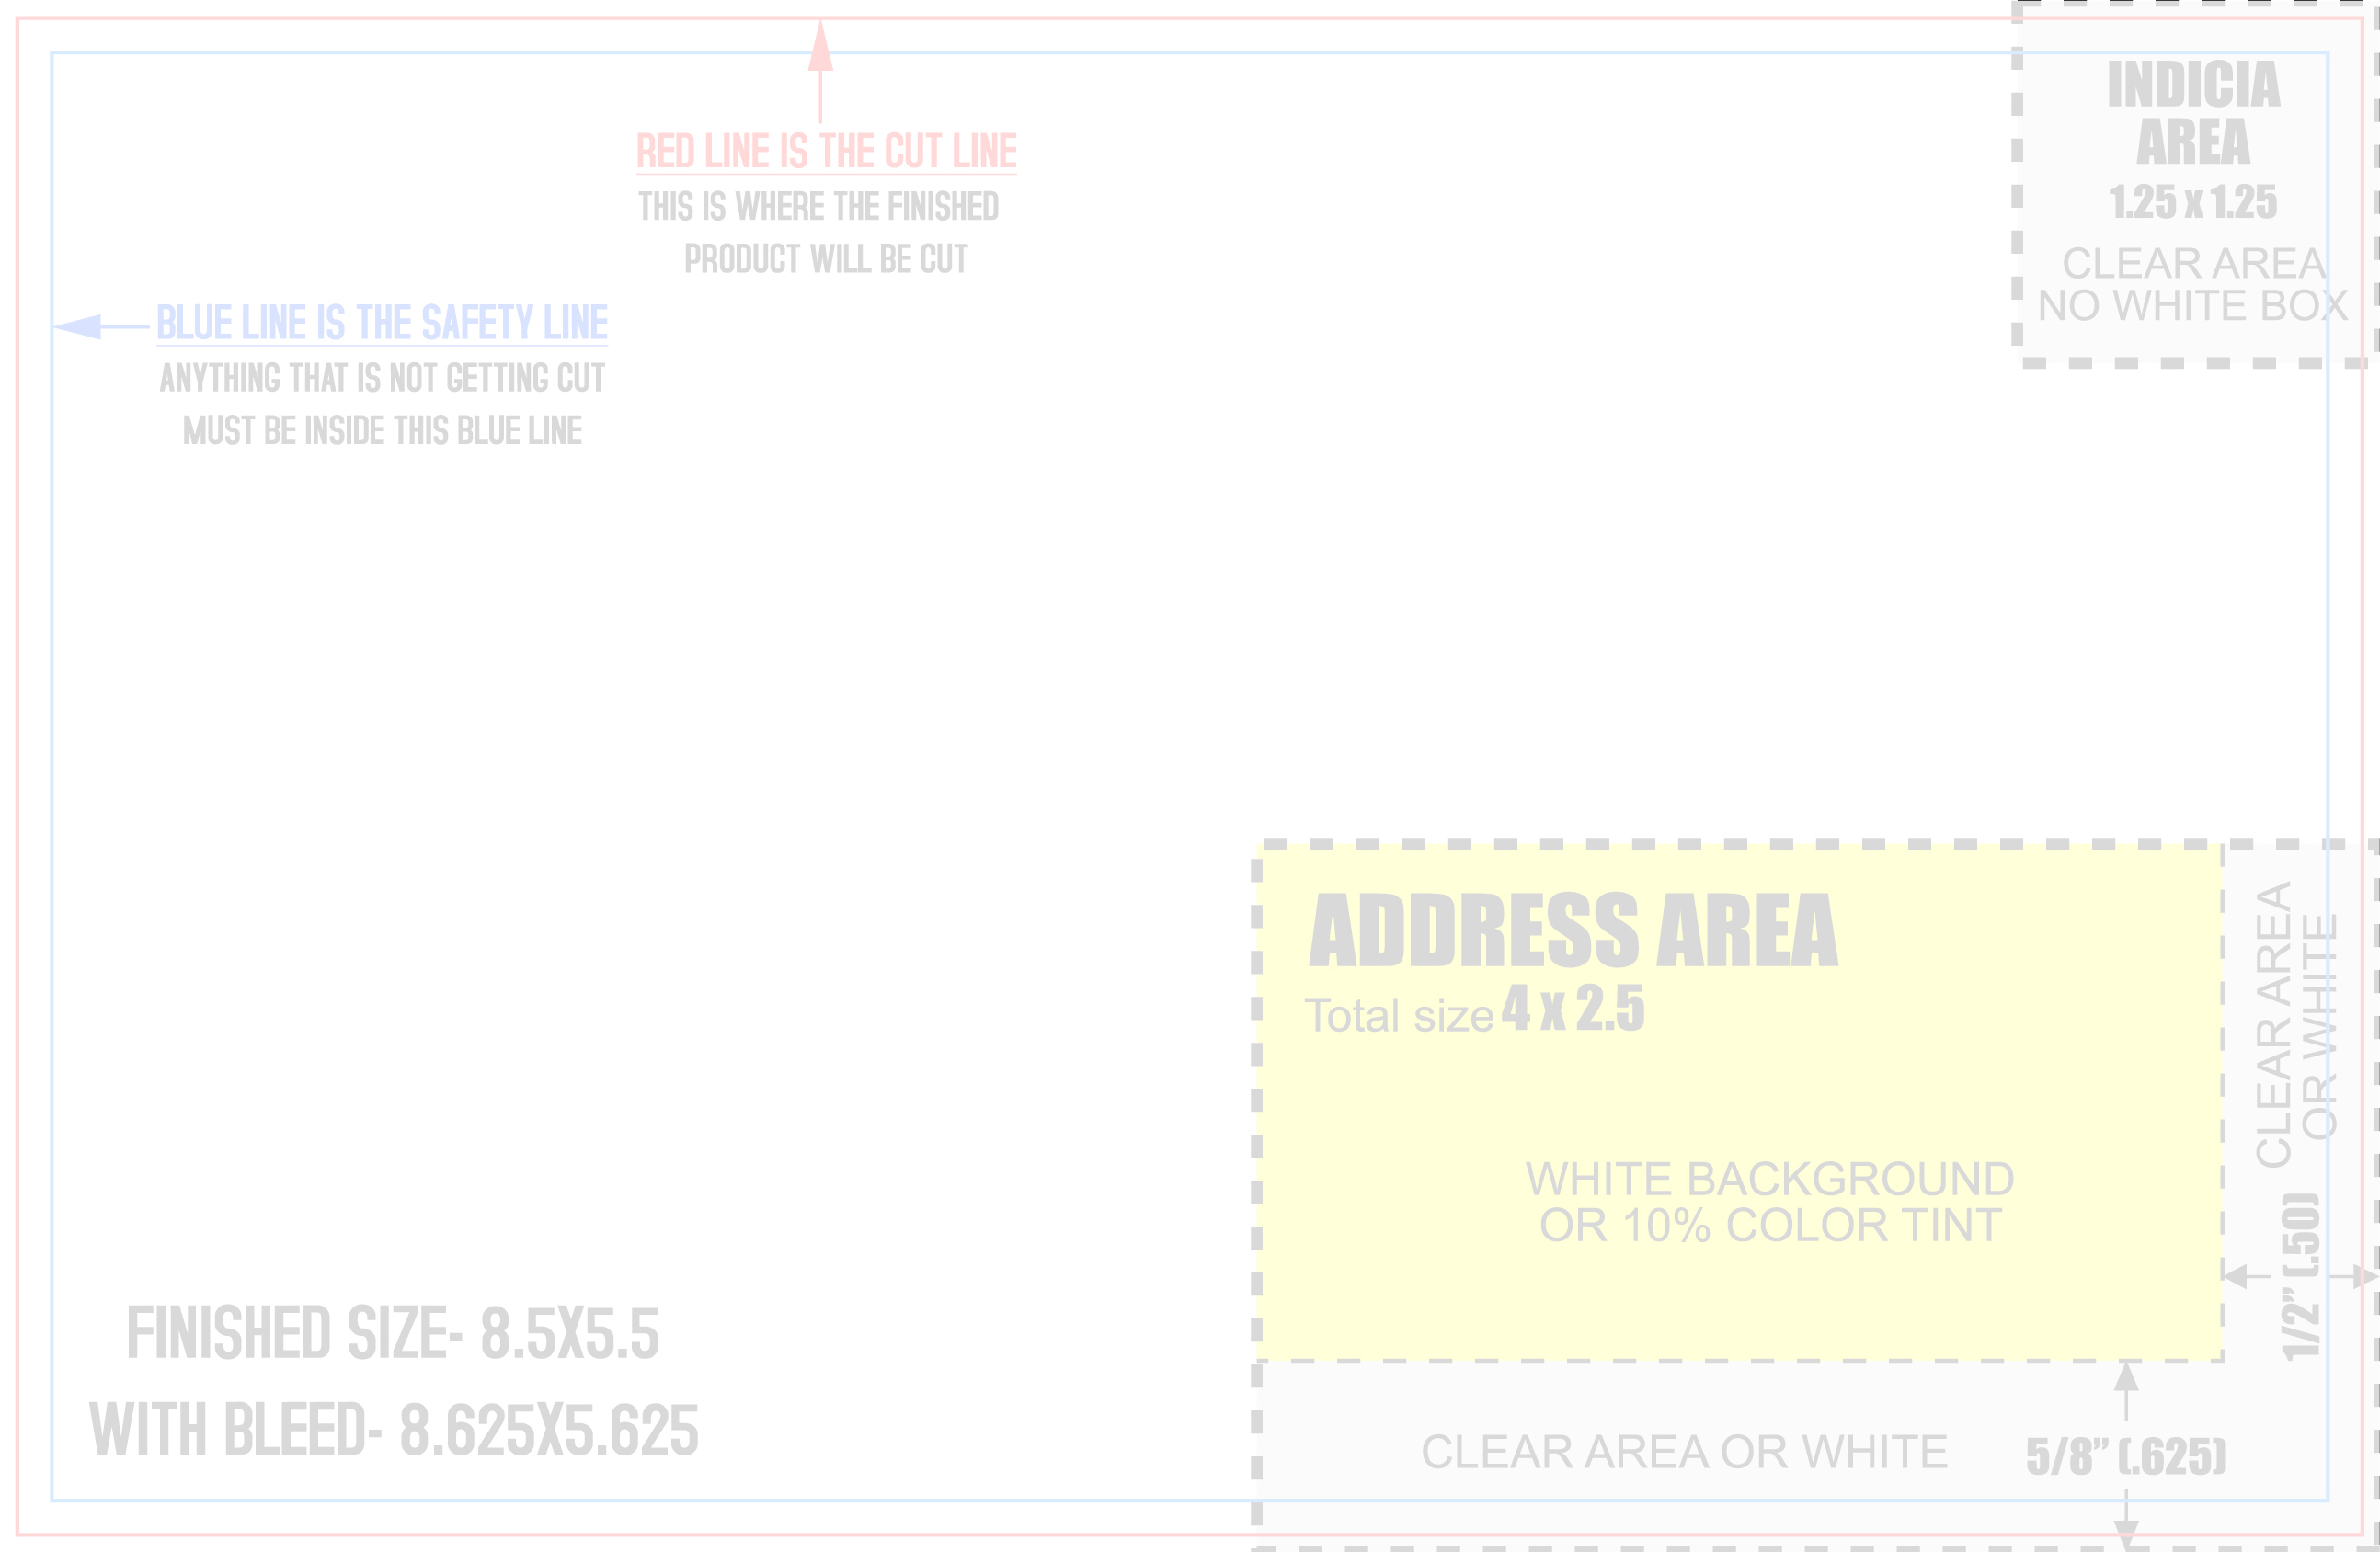 Free Christmas Mailing Labels Template Assistant Account Manager 8 Free  Christmas Mailing Labels Templatehtml  Free Christmas Mailing Labels Template